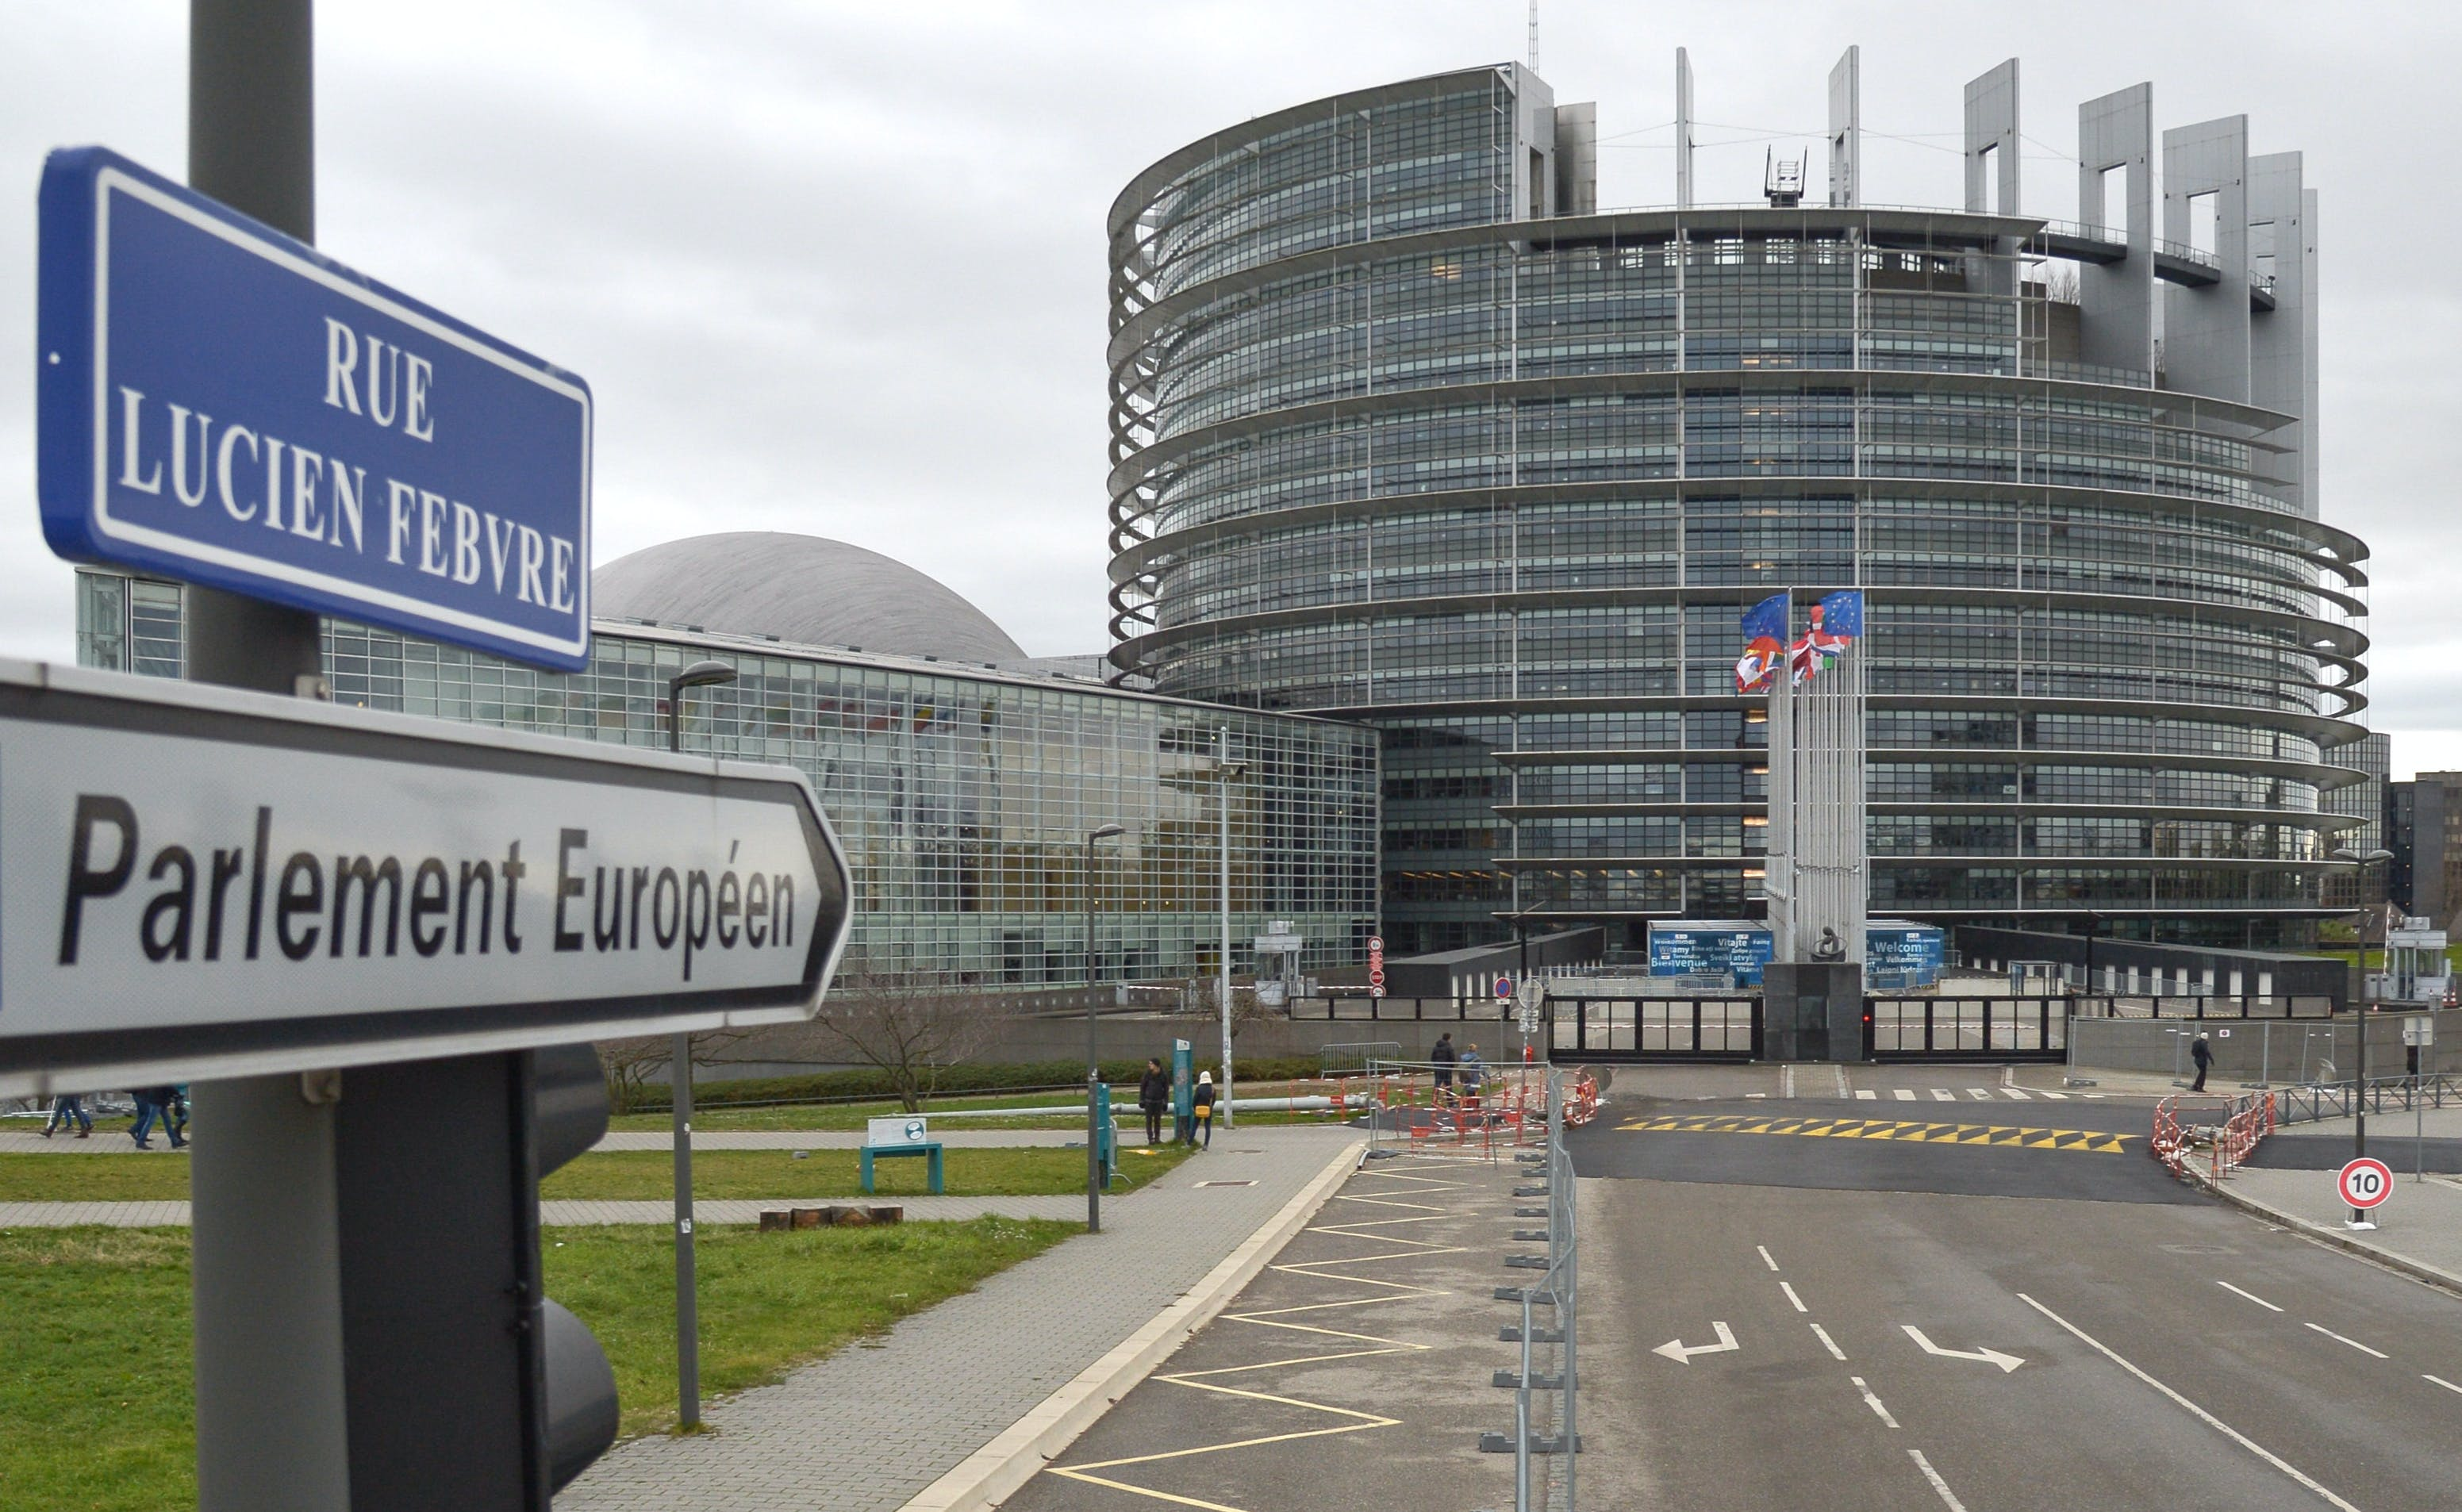 STRASBOURG, FRANCE - FEBRUARY 11, 2018: The building of the European Parliament (EP) as seen from Rue Lucien Febvre Street in the city of Strasbourg. Alexei Vitvitsky/TASS (Photo by Alexei VitvitskyTASS via Getty Images)